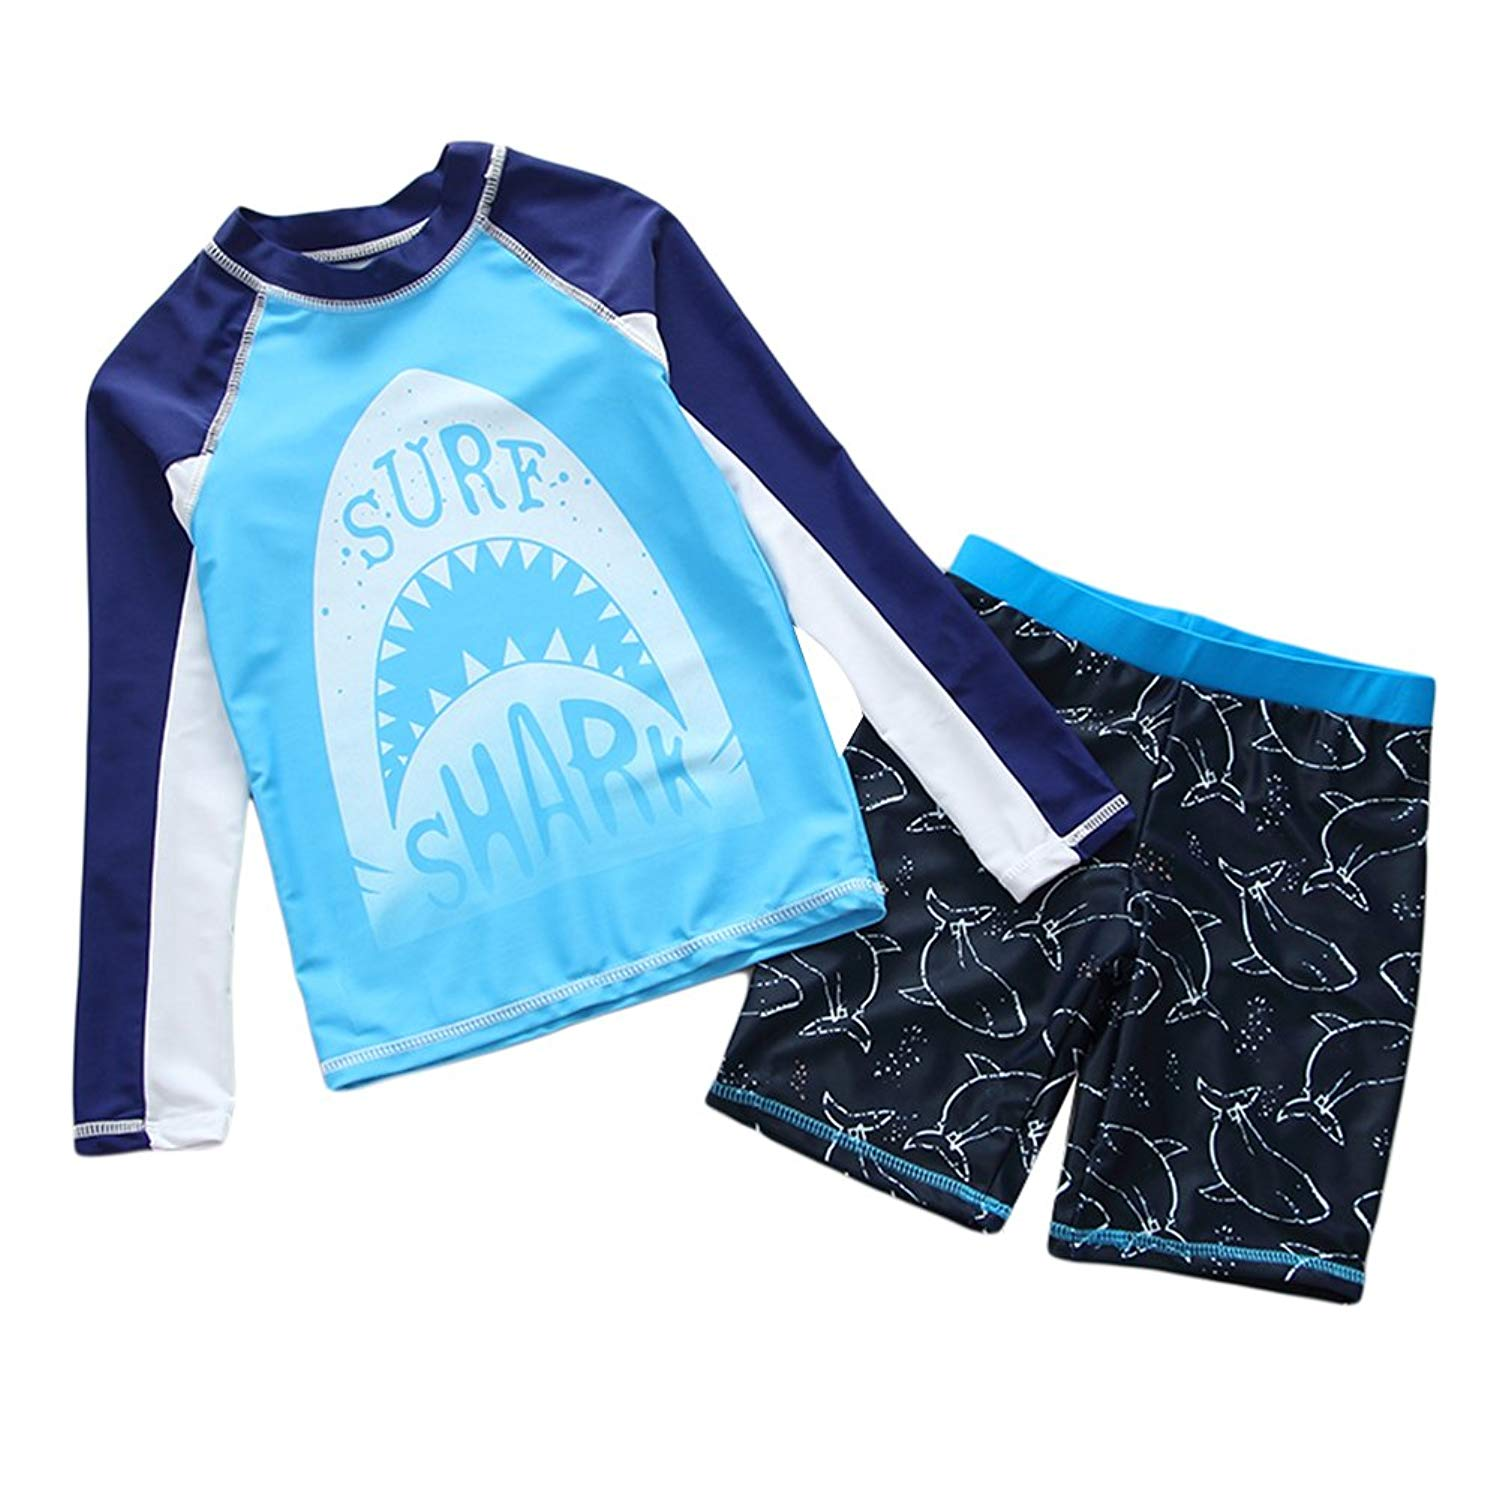 98e0a78e14 Get Quotations · Collager Toddler Boys Two Piece Cute Swimsuit Kids UV Sun  Protective Long Sleeve Bathing Suit Surfing